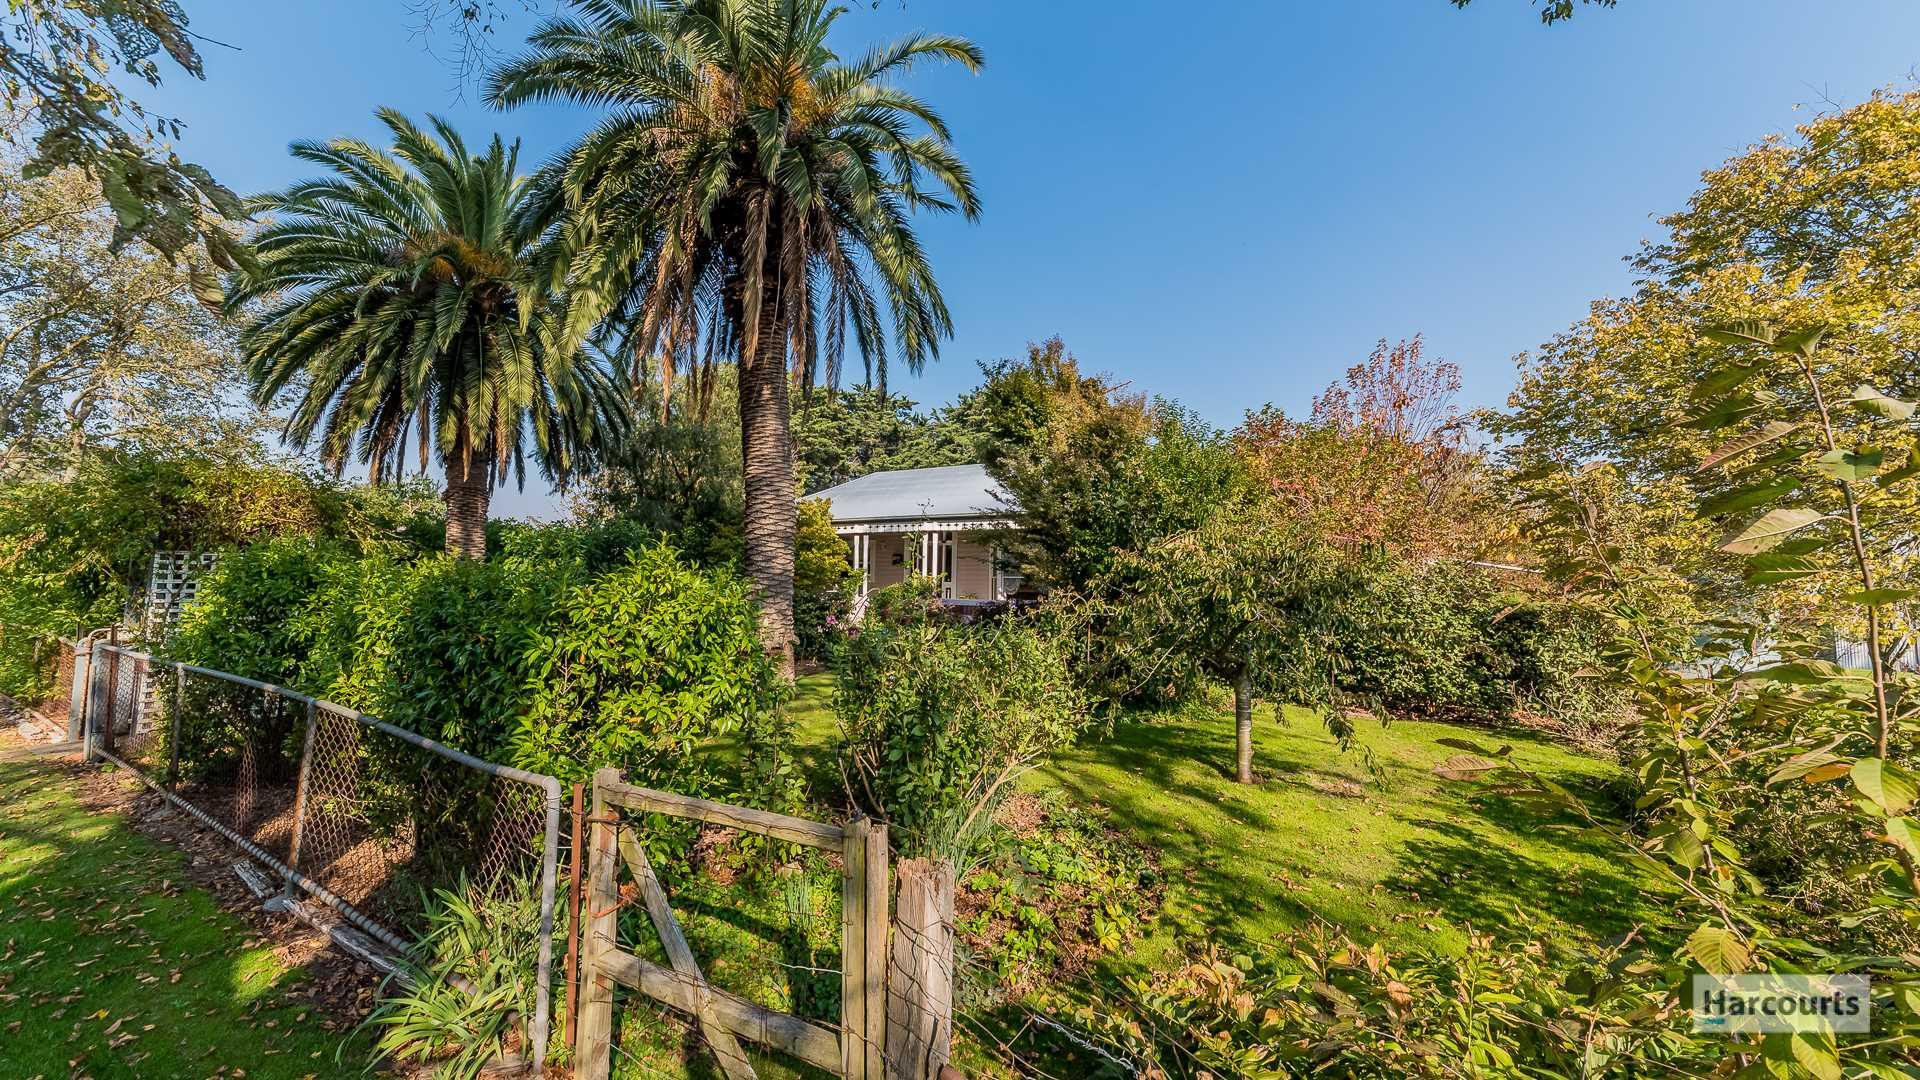 Period Home On 9.2 Acres